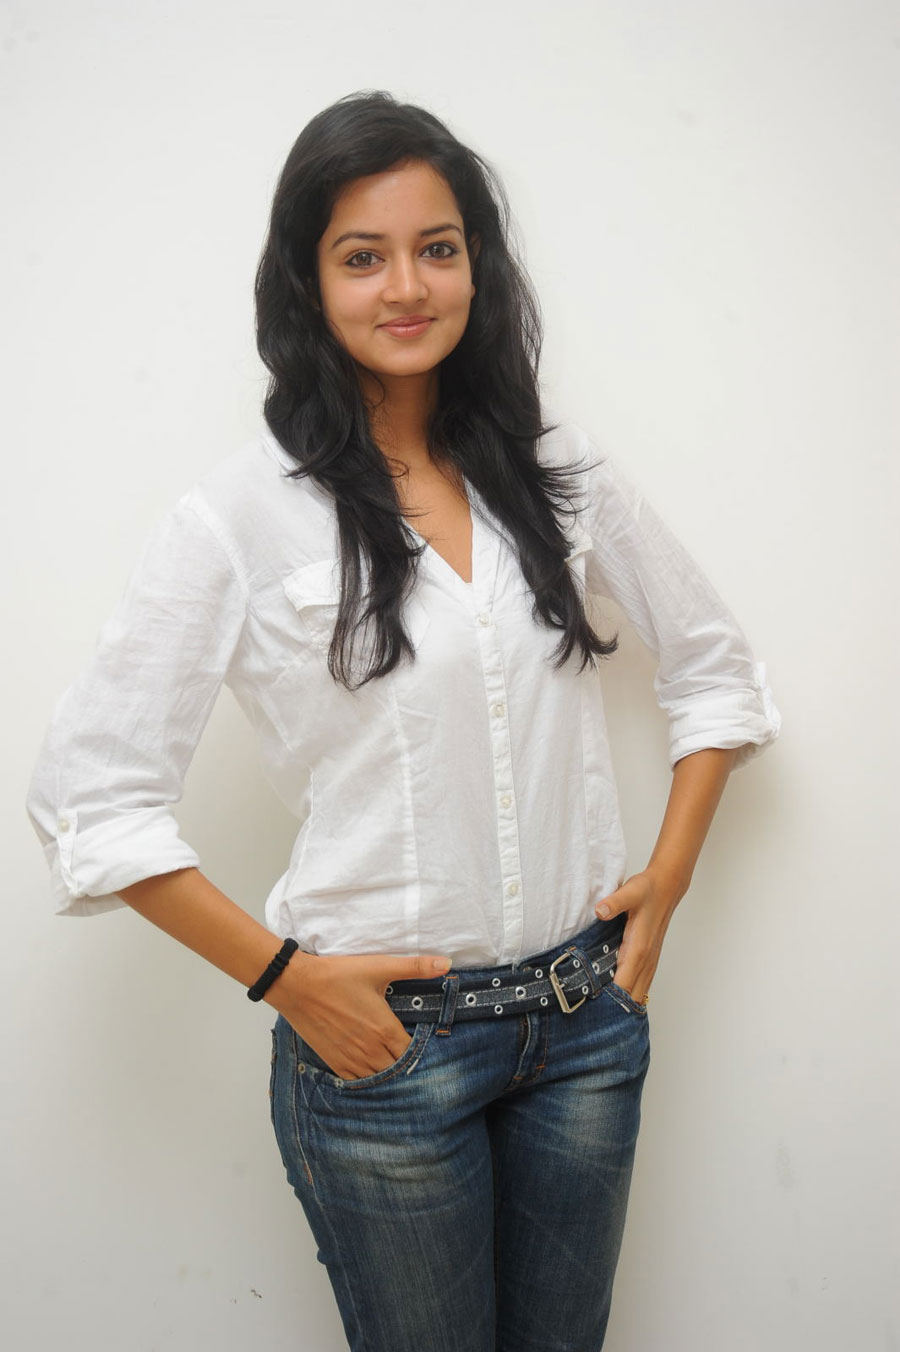 Shanvi Shoot in Adda Press Meet Photo Gallery Sanvi-20